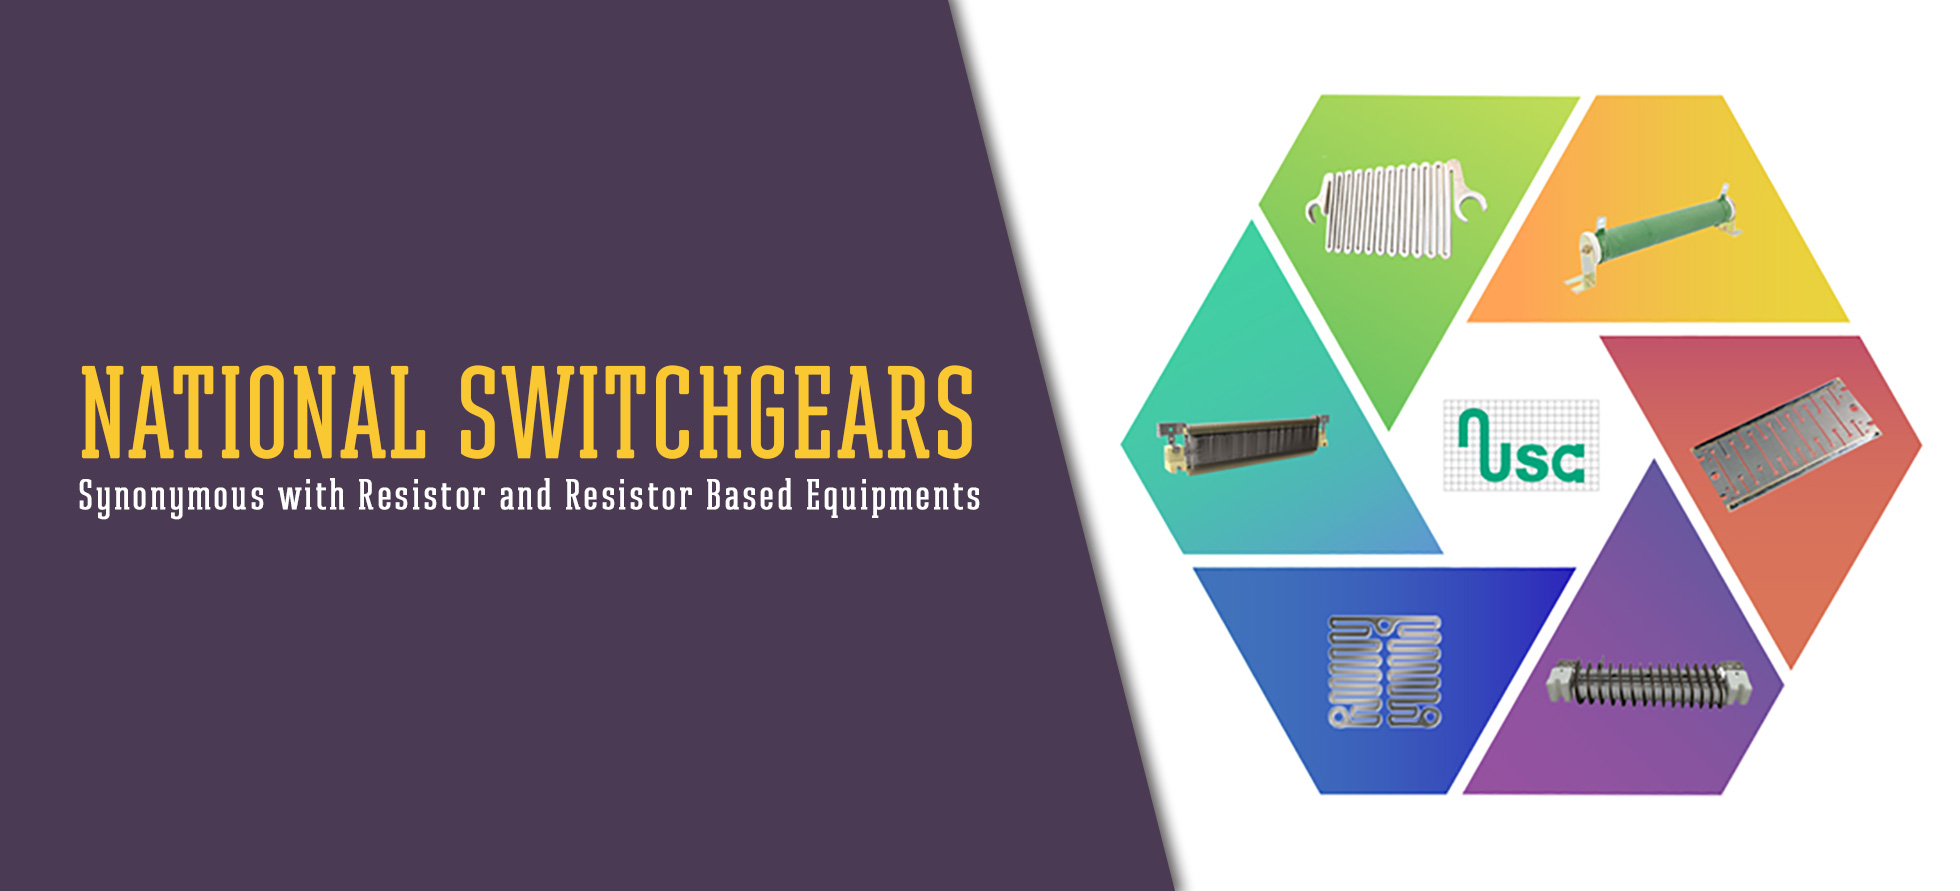 National Switchgears